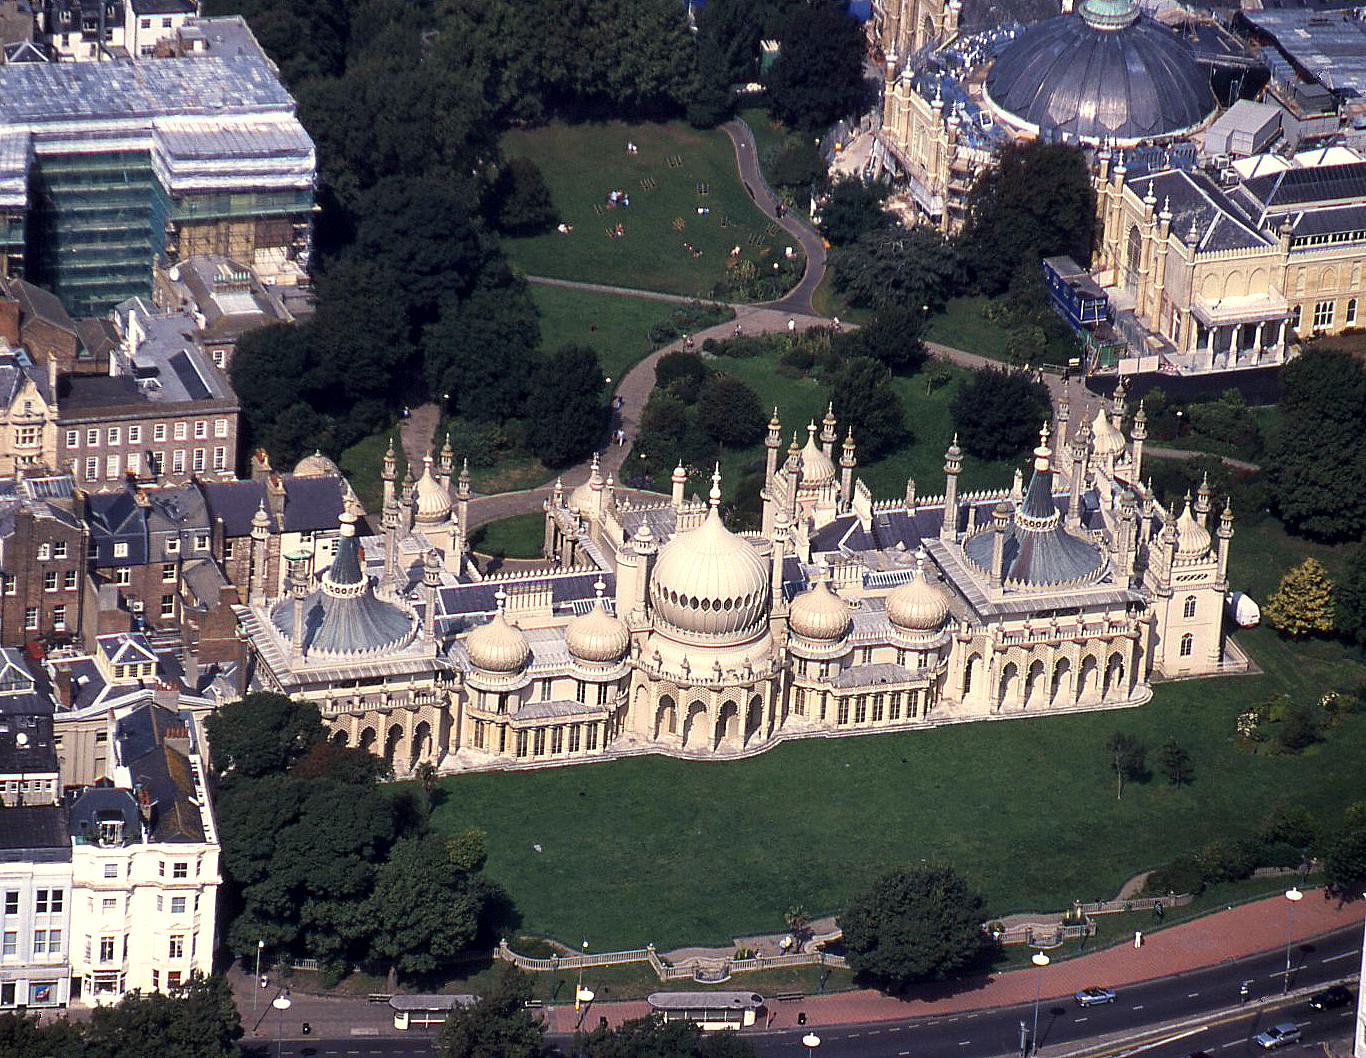 Brighton Pavillion in August 2001